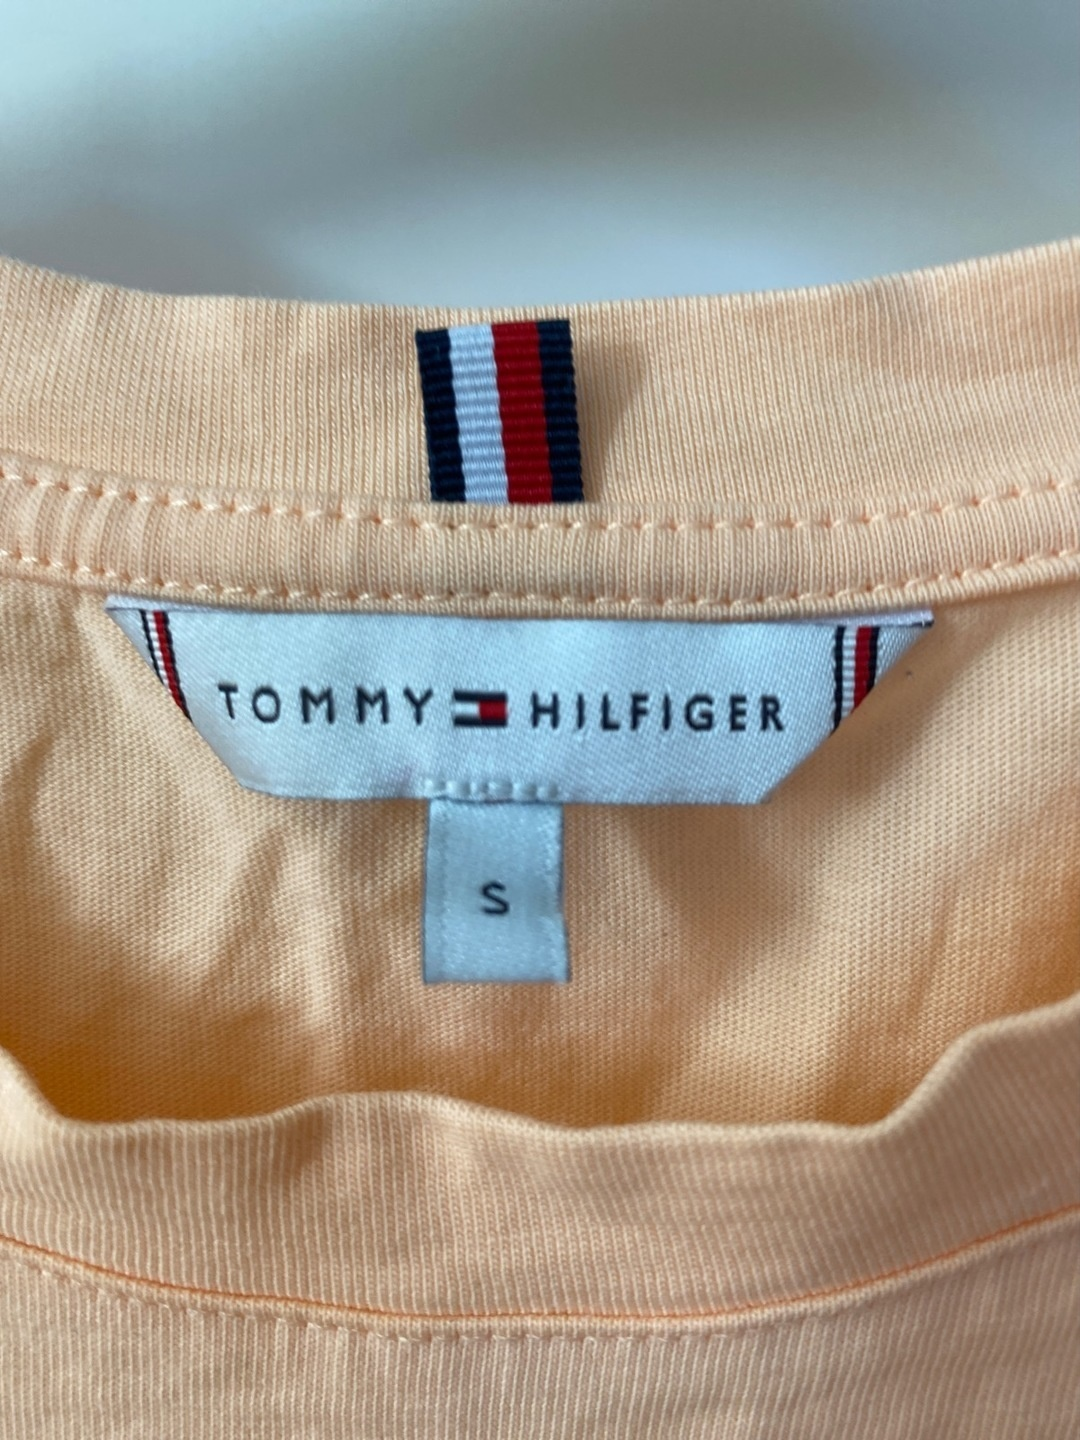 Women's tops & t-shirts - TOMMY HILFIGER photo 3